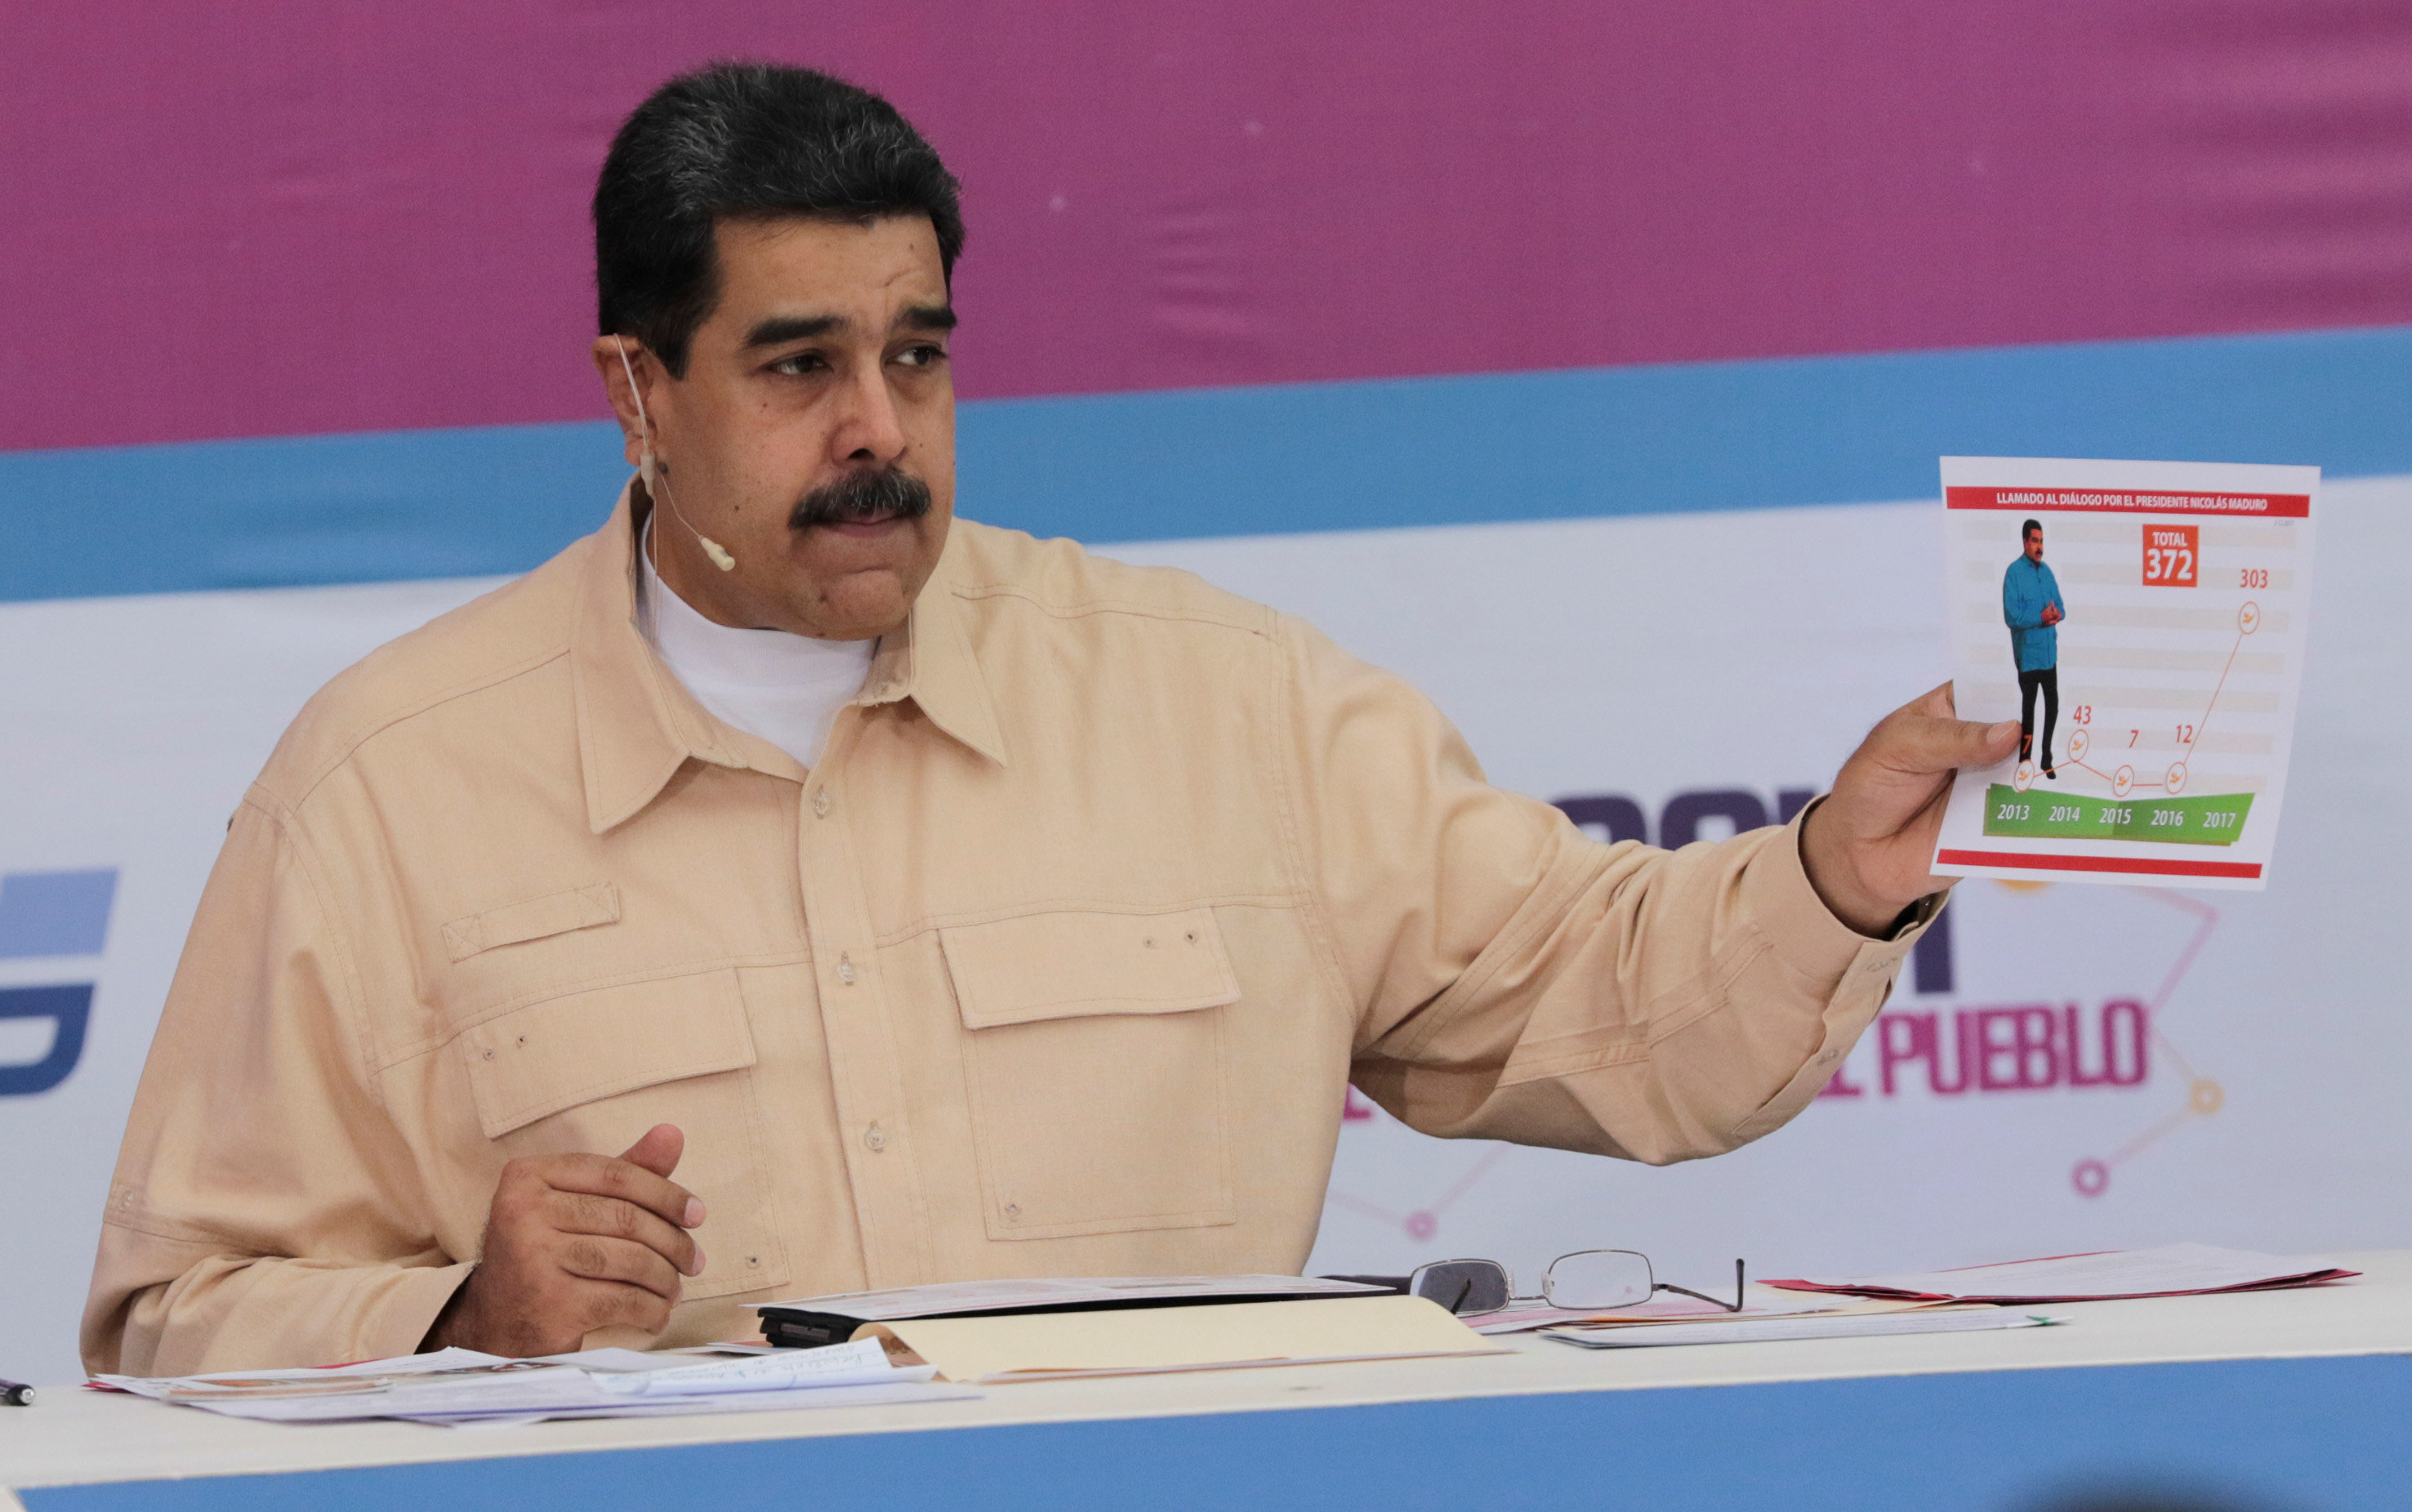 Venezuelan leader Nicolas Maduro speaks during a weekly radio and TV broadcast in Caracas on Sunday. Photo: Reuters